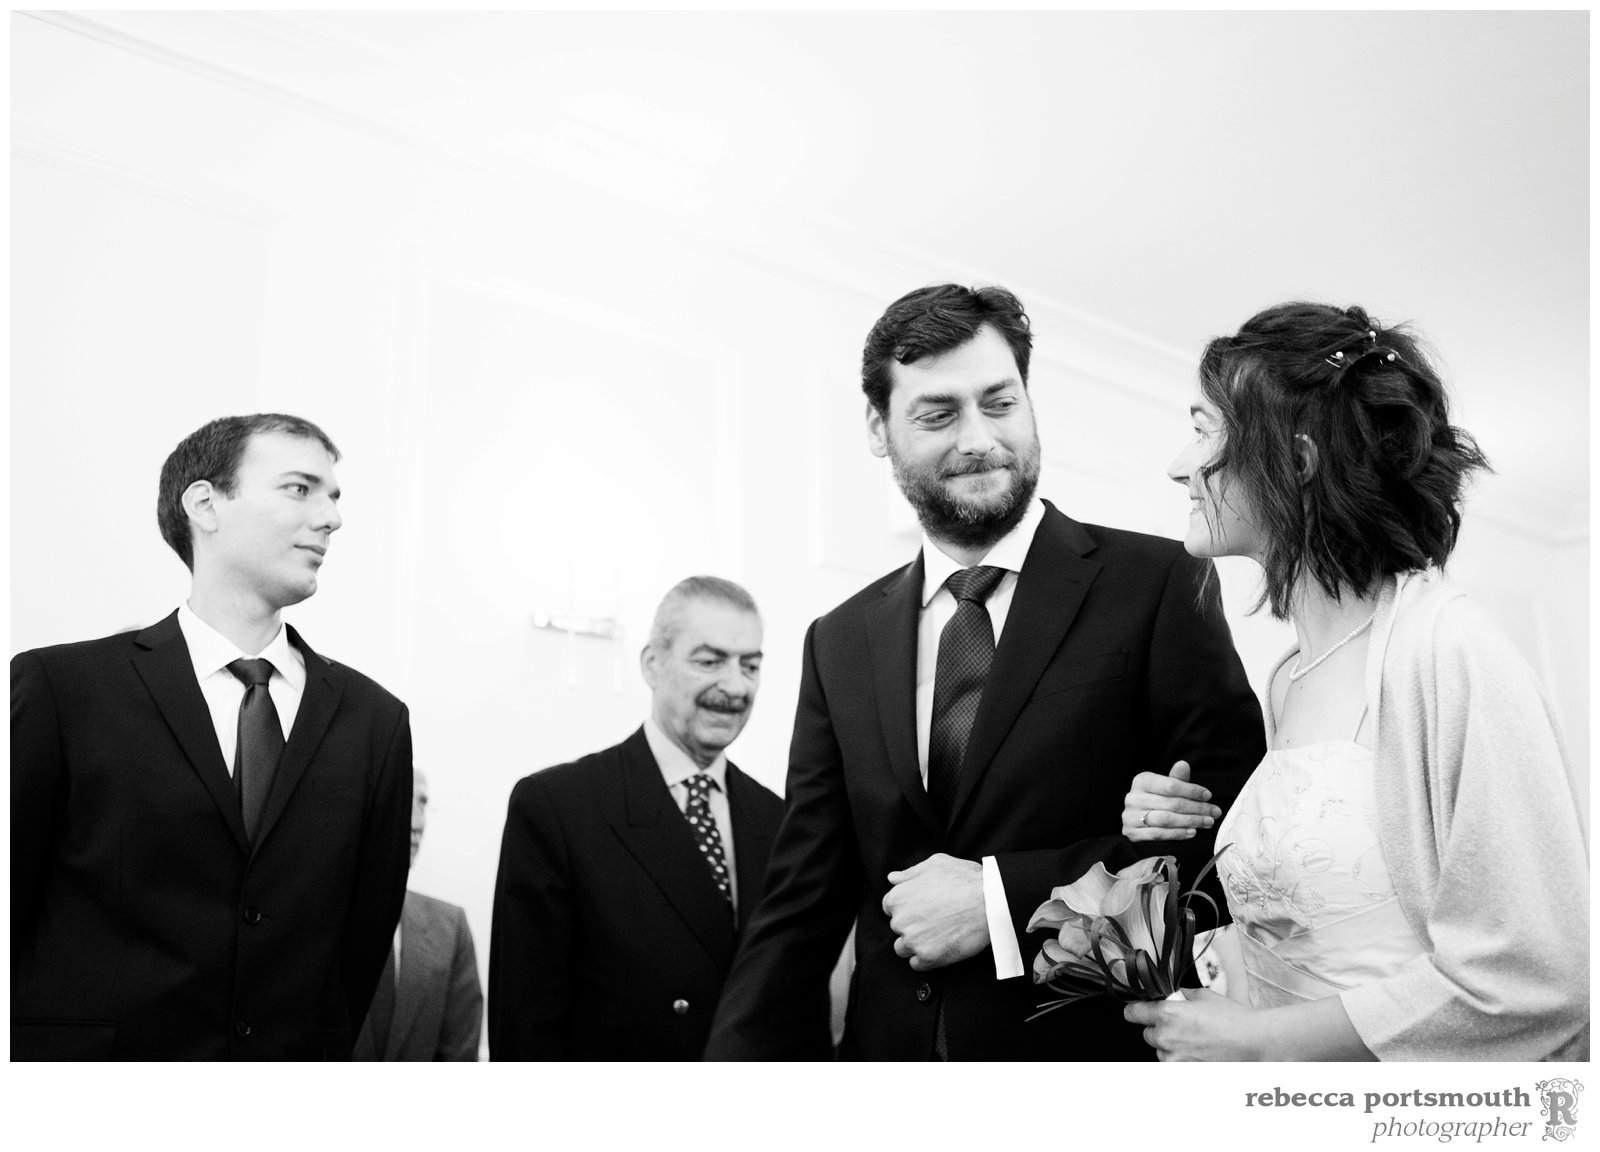 The bride and groom enter the ceremony at their Cambridge Register Office wedding.